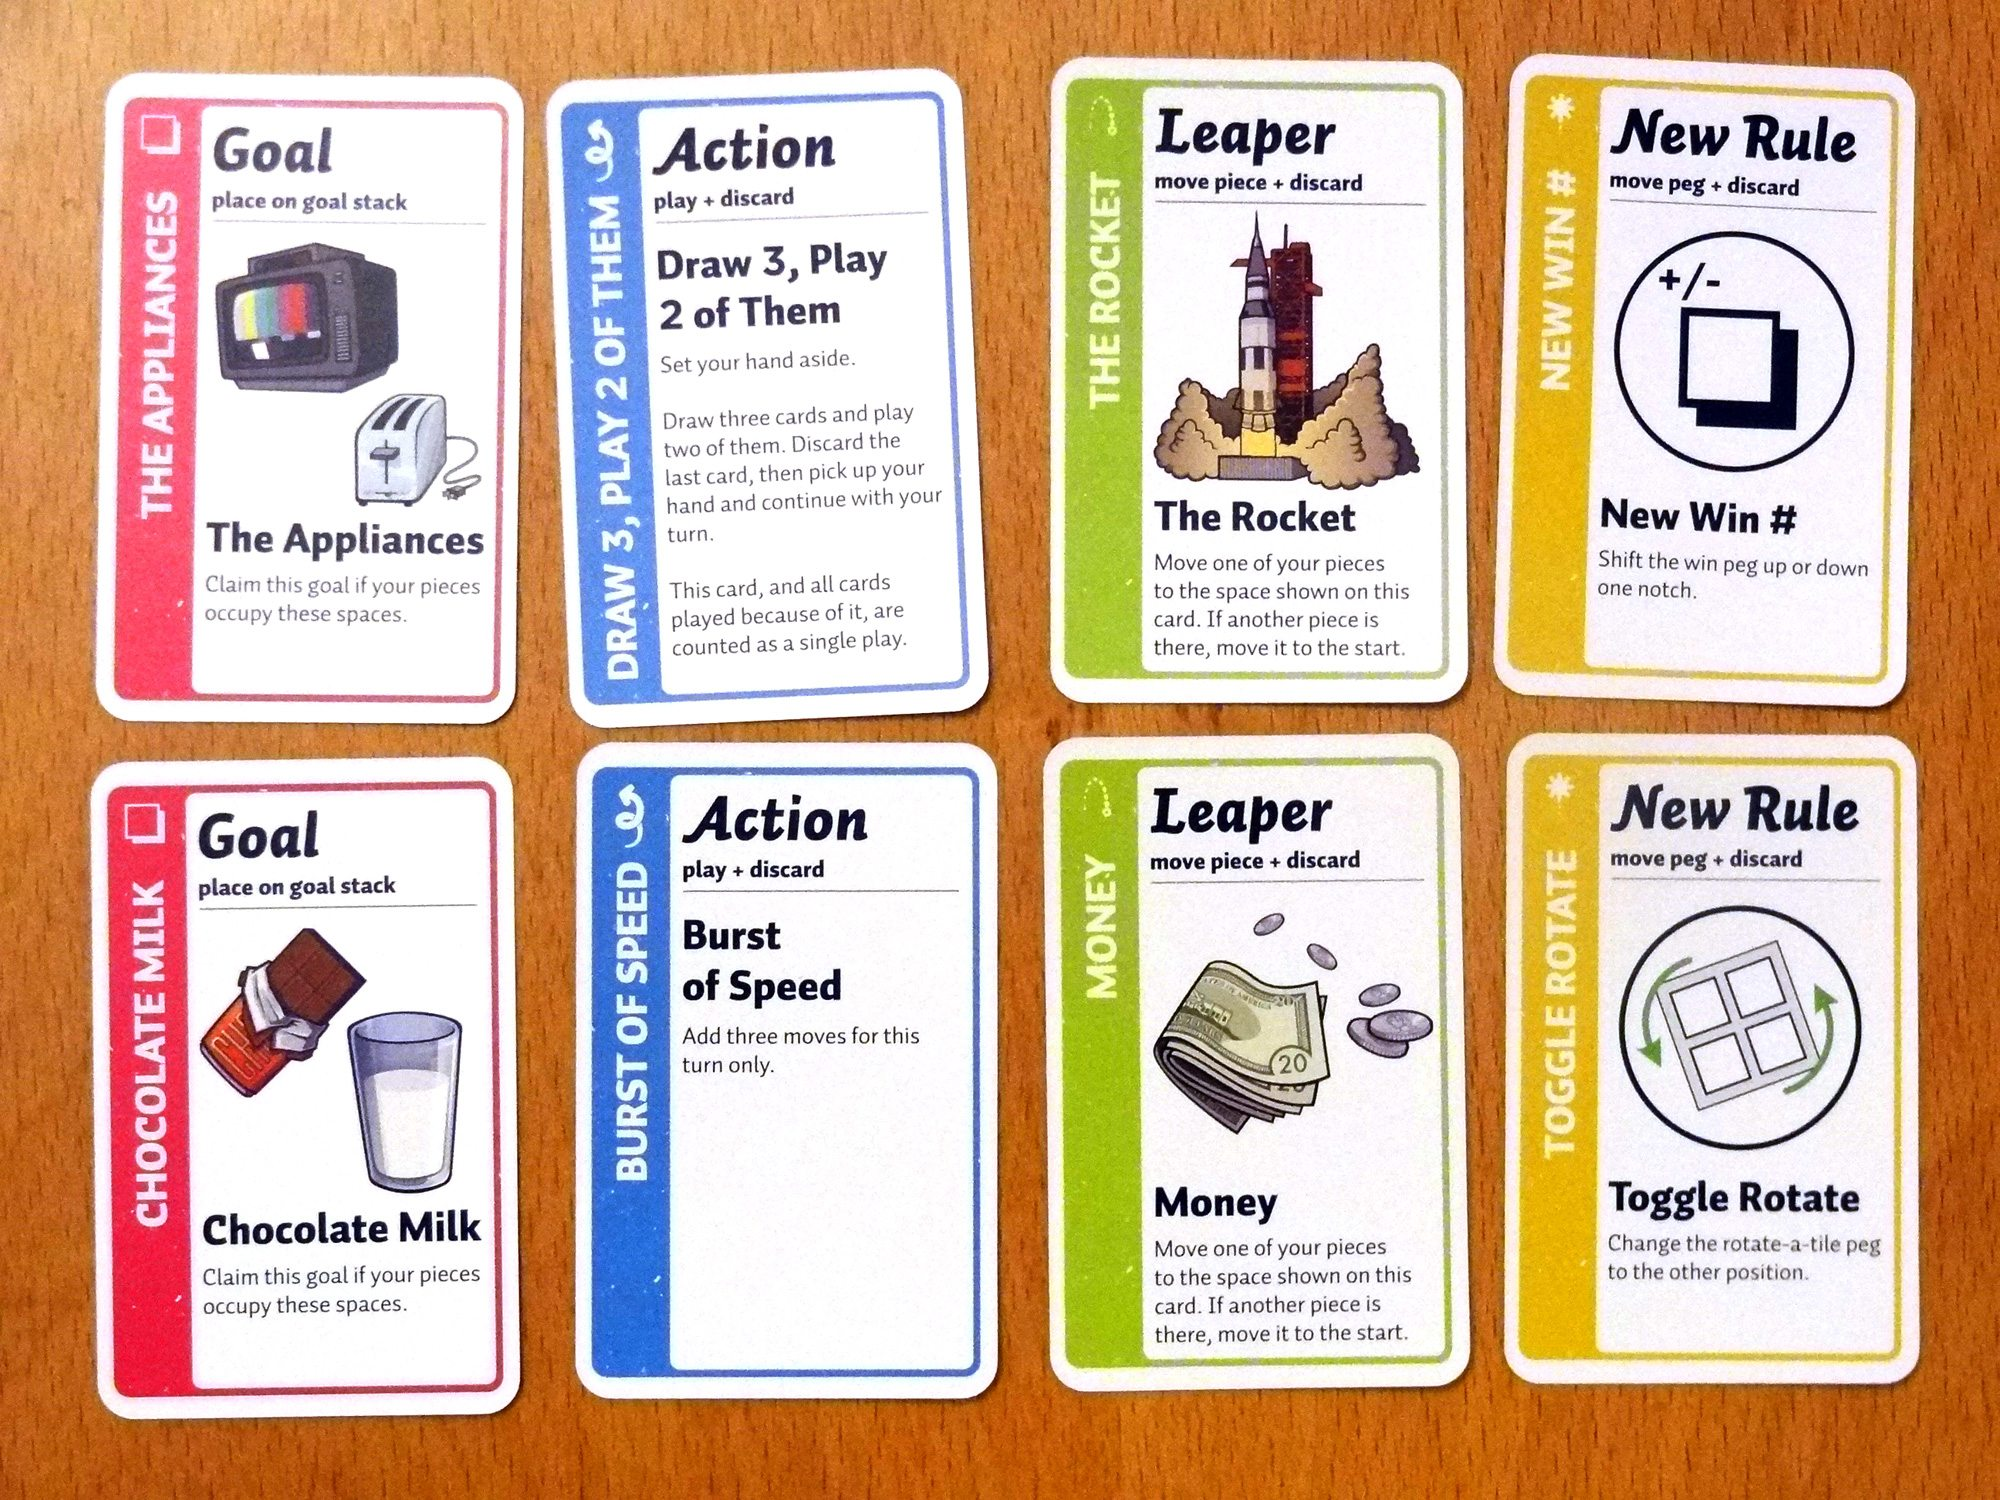 Fluxx Board Game cards